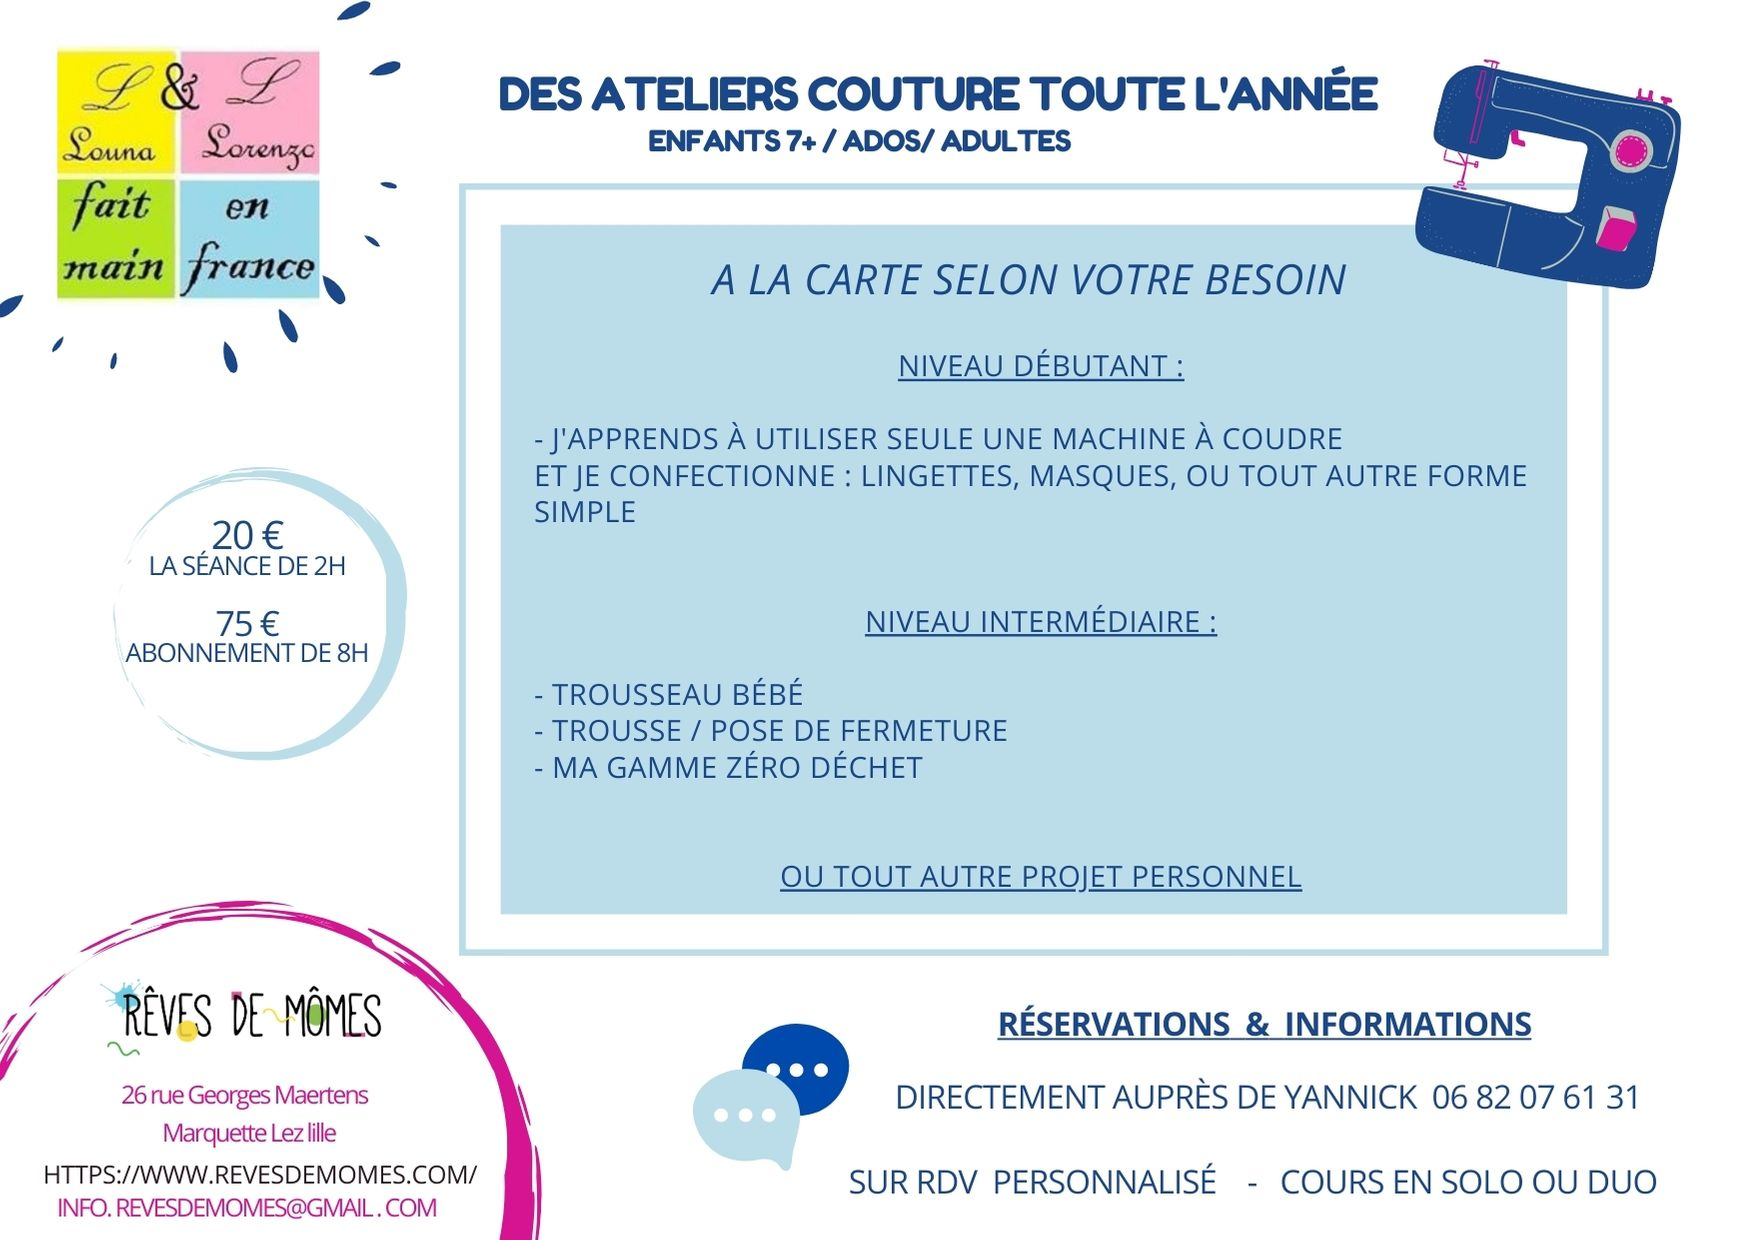 Ateliers créatifs couture reves momes craienco nord diy